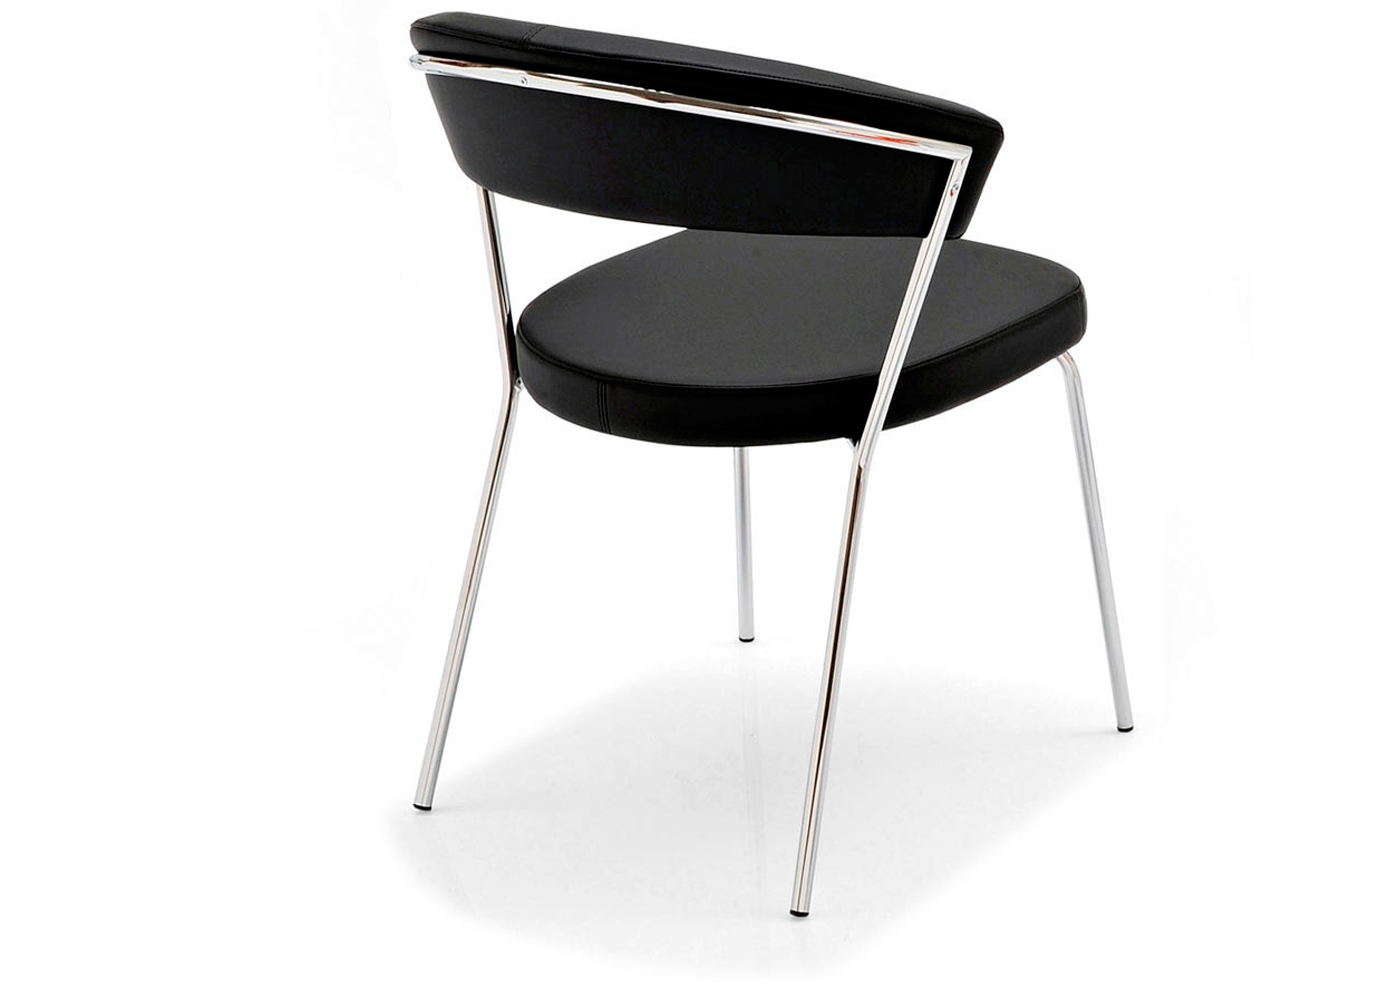 Calligaris Chairs Calligaris New York Chair Midfurn Furniture Superstore